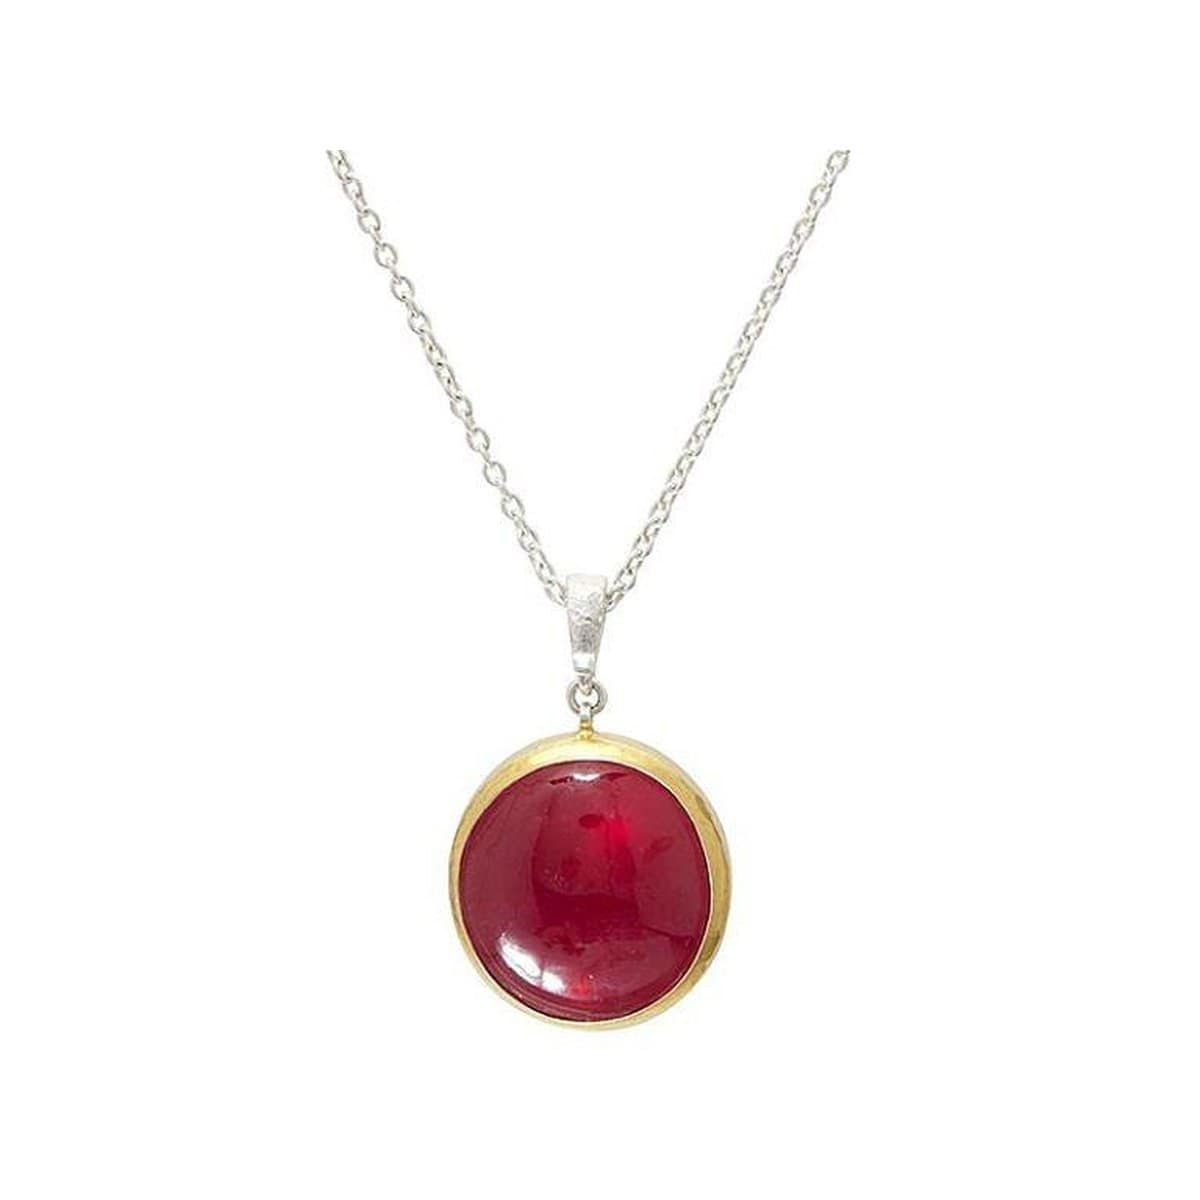 Galapagos Sterling Silver Ruby Necklace - SN-U24913-RU